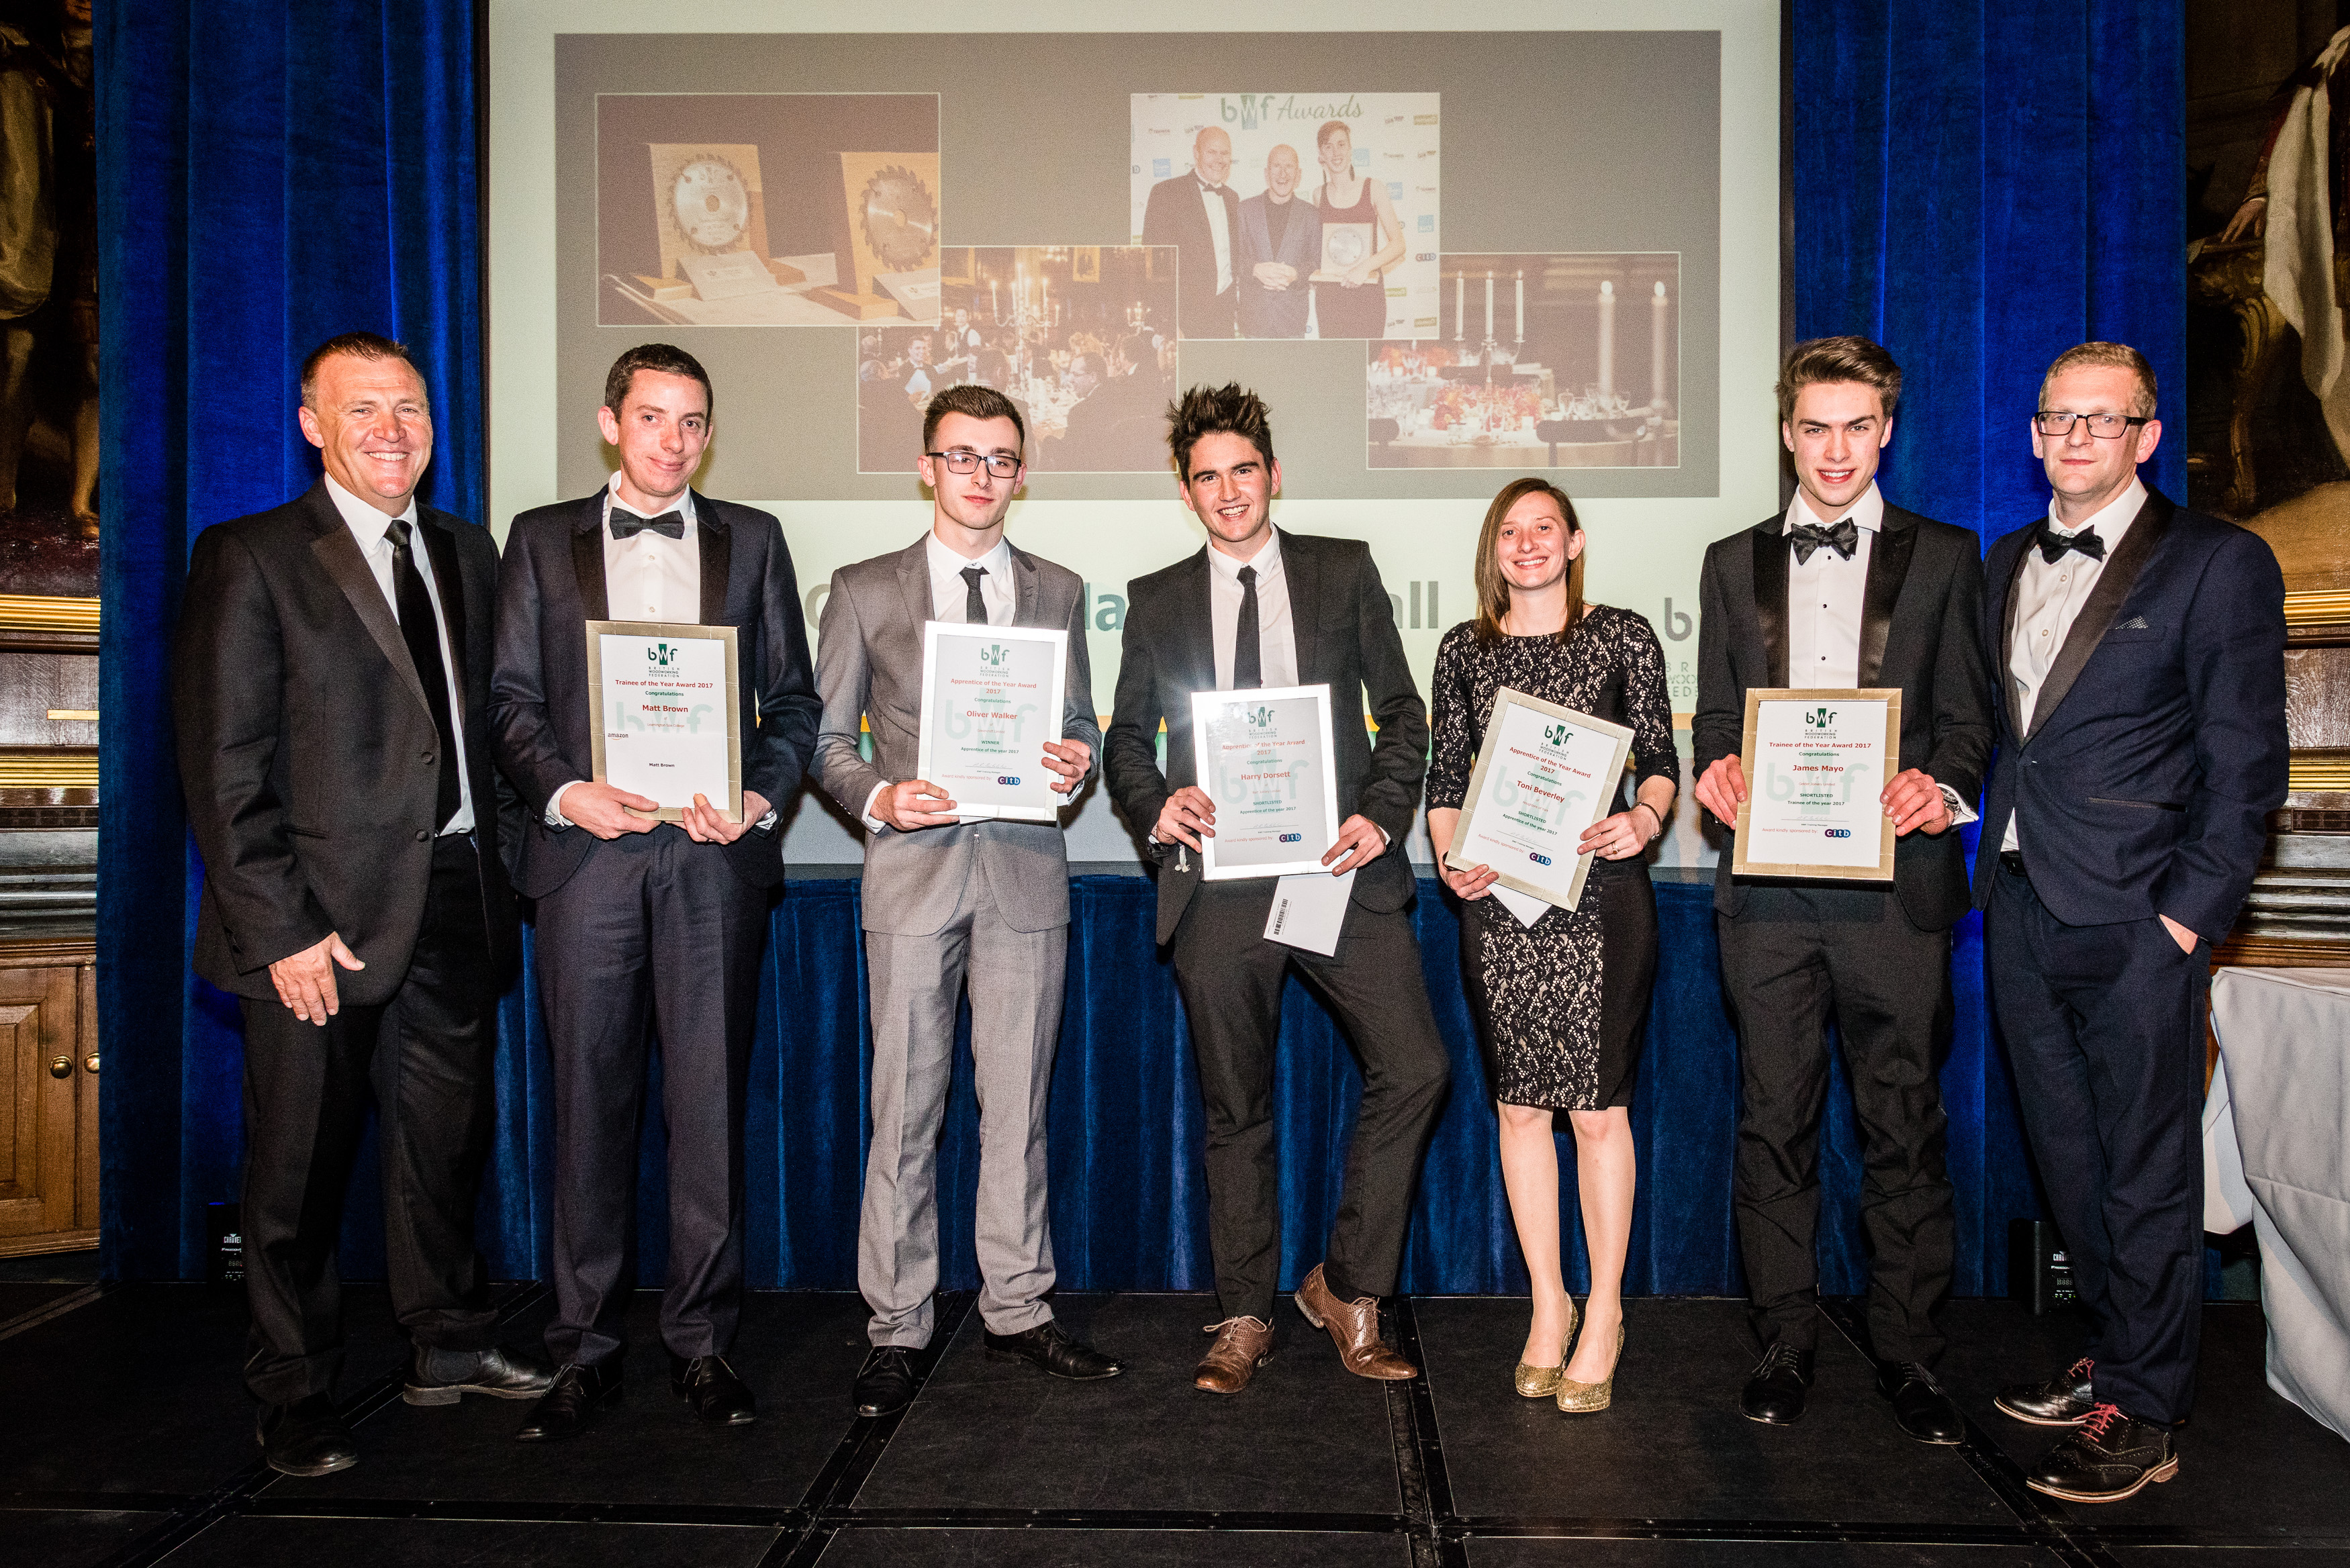 Rising stars and woodworking success stories celebrated at industry awards